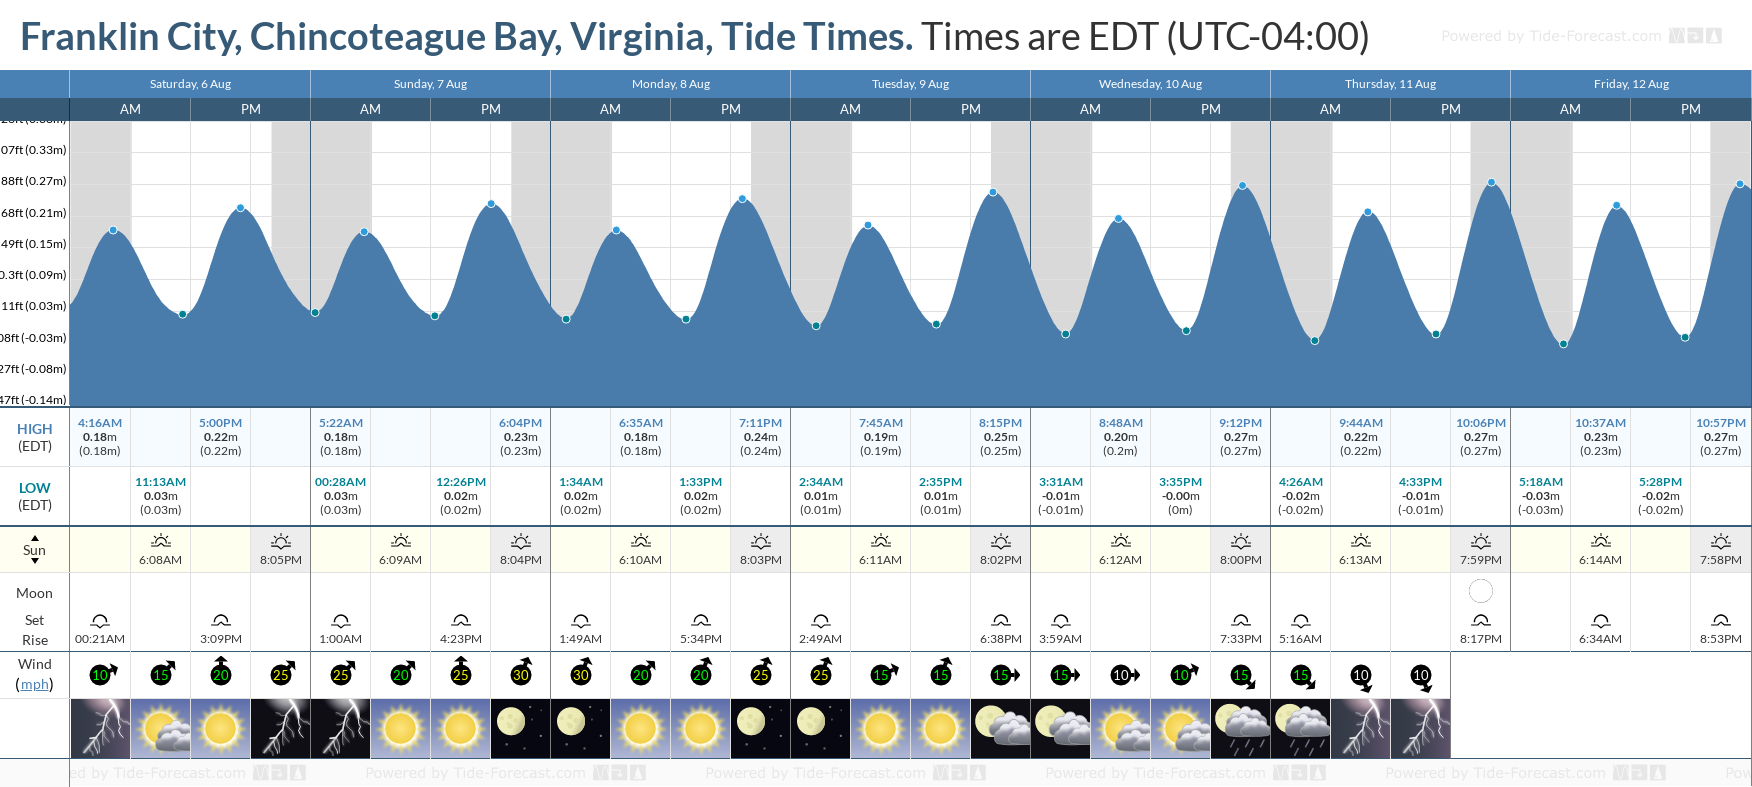 Franklin City, Chincoteague Bay, Virginia Tide Chart including high and low tide tide times for the next 7 days